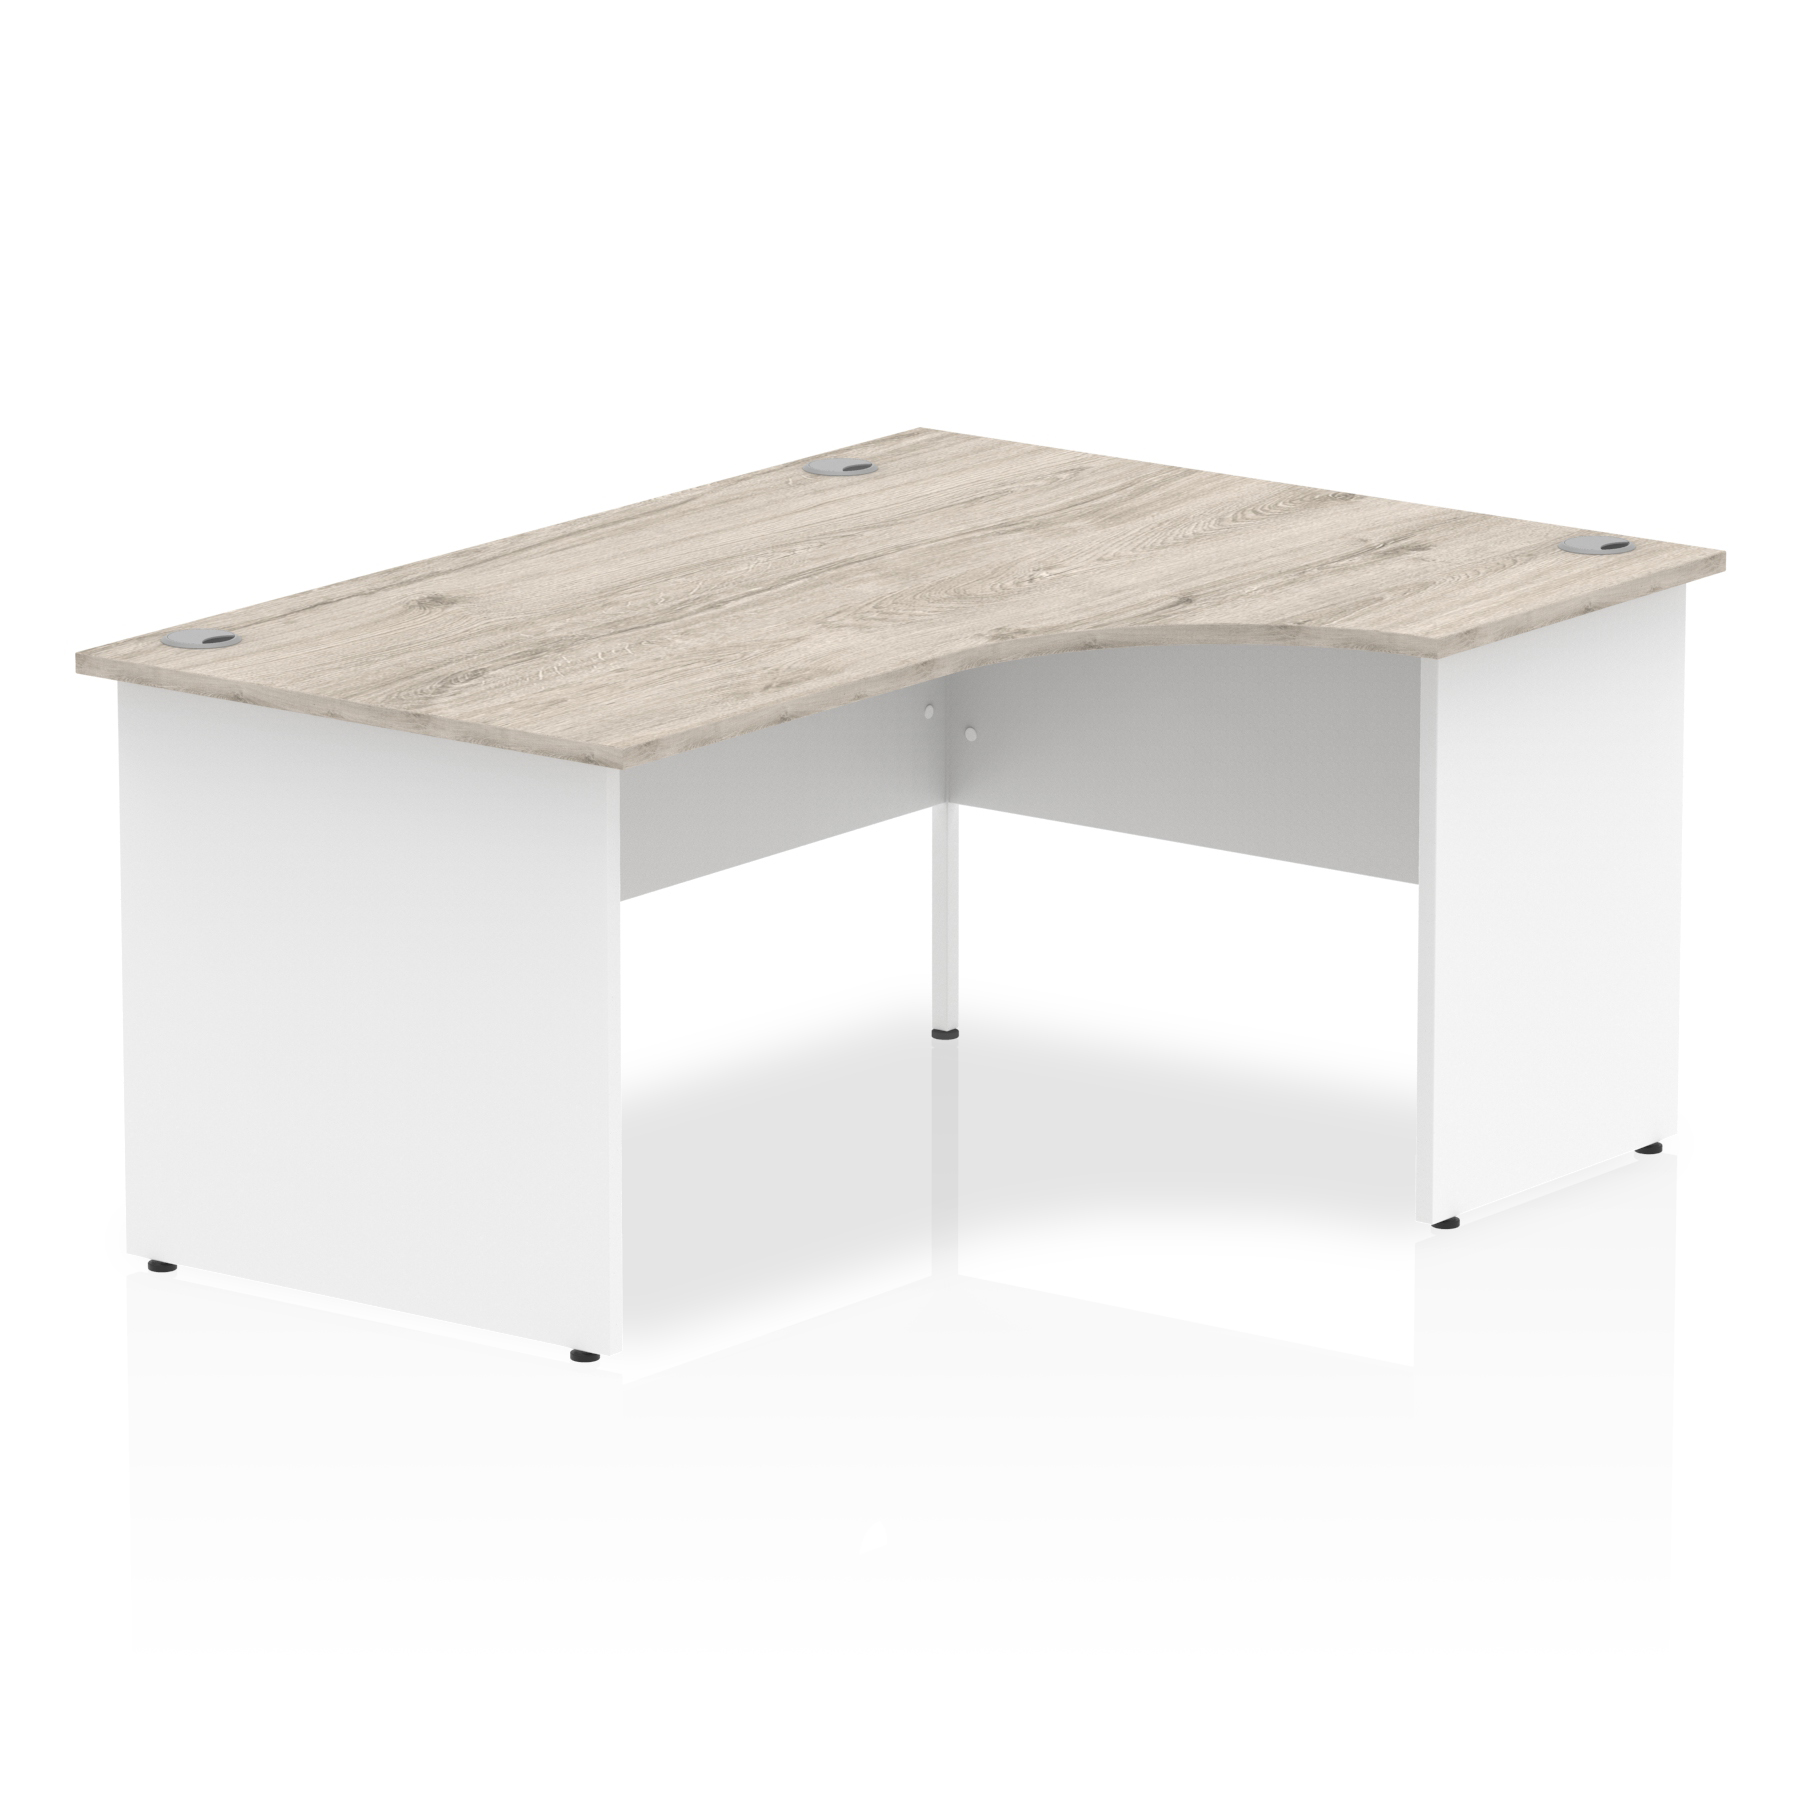 Desks Trexus Radial Desk Right Hand Panel End Leg 1600/800mm Grey Oak/White Ref TT000162